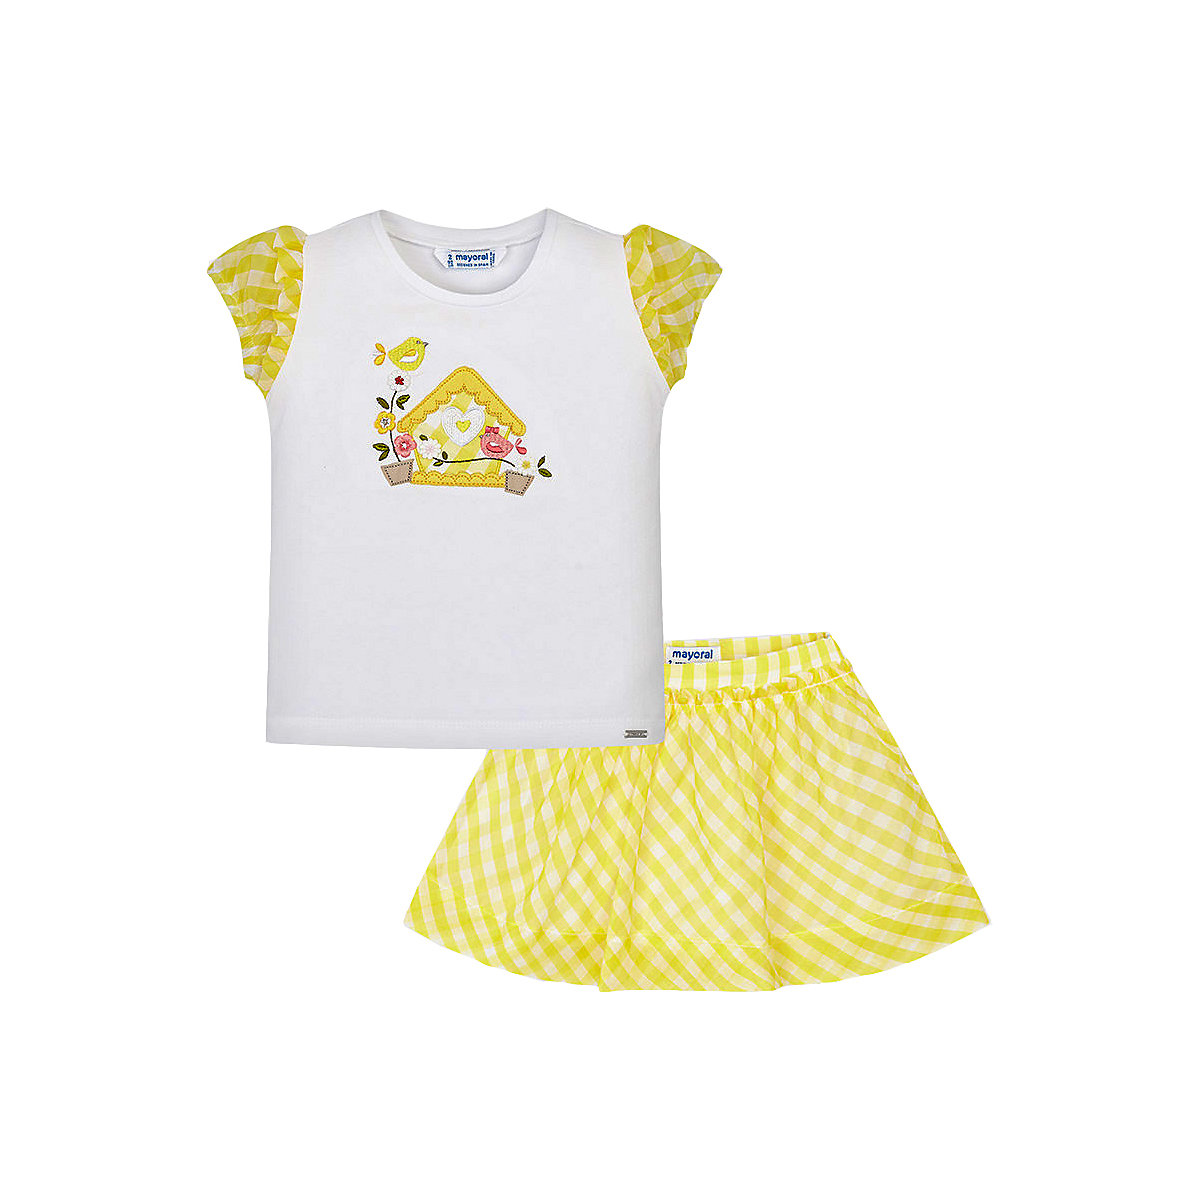 Фото - Baby's Sets MAYORAL 10685260 set of clothes for kids T-shirt legs shirt shorts girls and boys shein kiddie girls white striped side casual top and shorts two piece set clothes sets 2019 spring long sleeve kids suit set